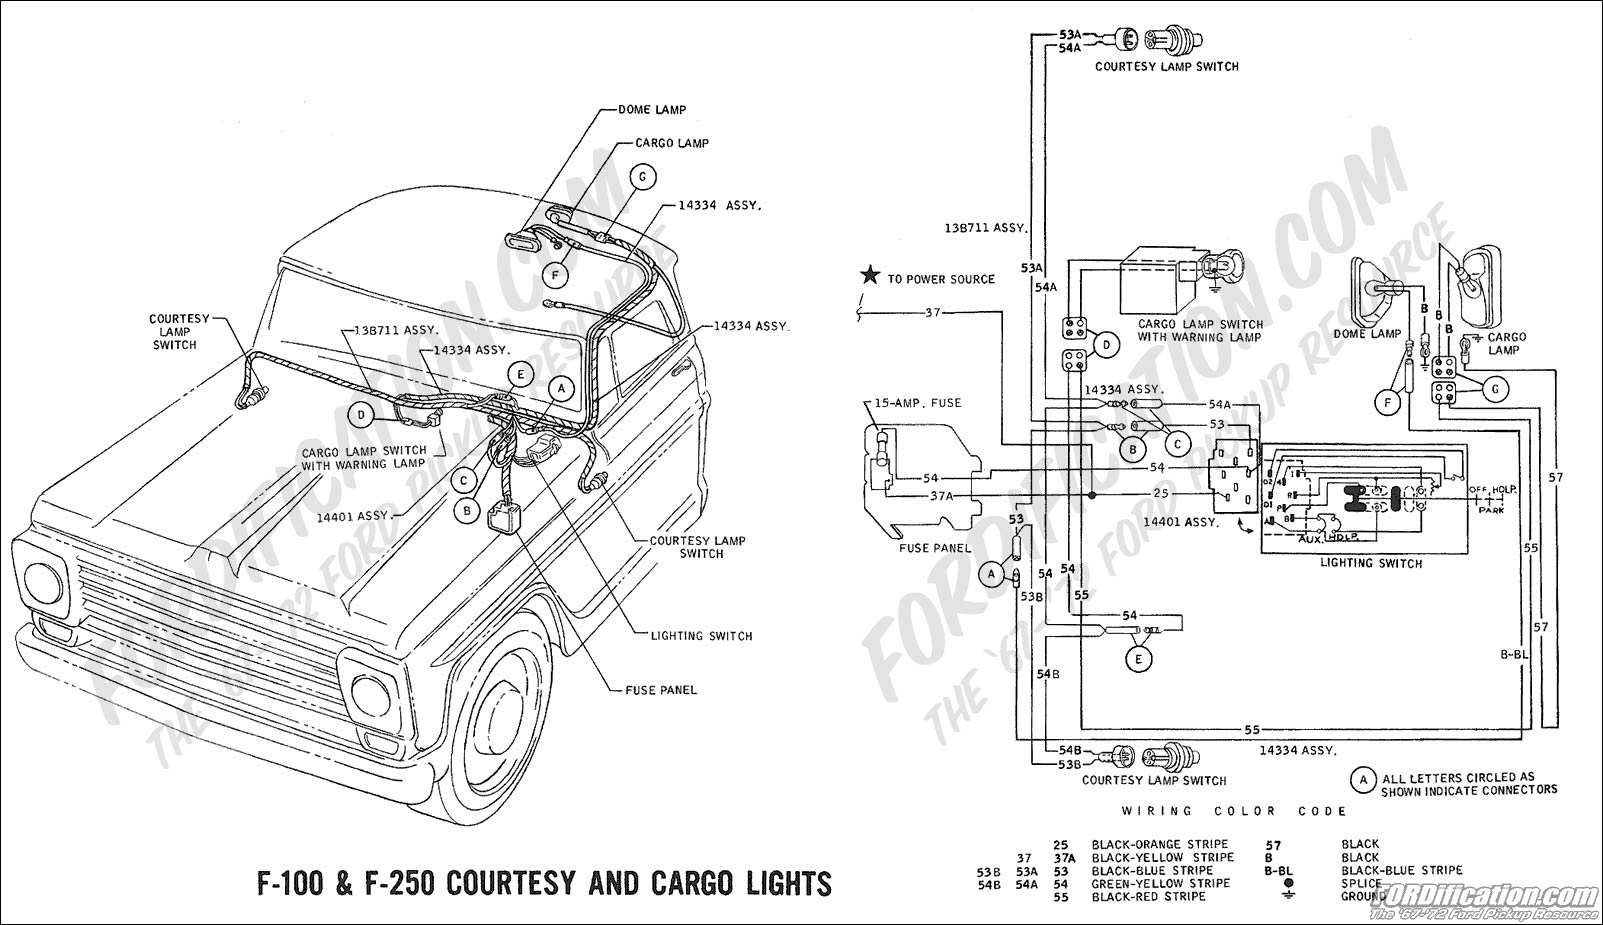 1960 ford f100 wiring harness 1960 image wiring 1966 ford f100 wiring diagram 1966 image wiring on 1960 ford f100 wiring harness